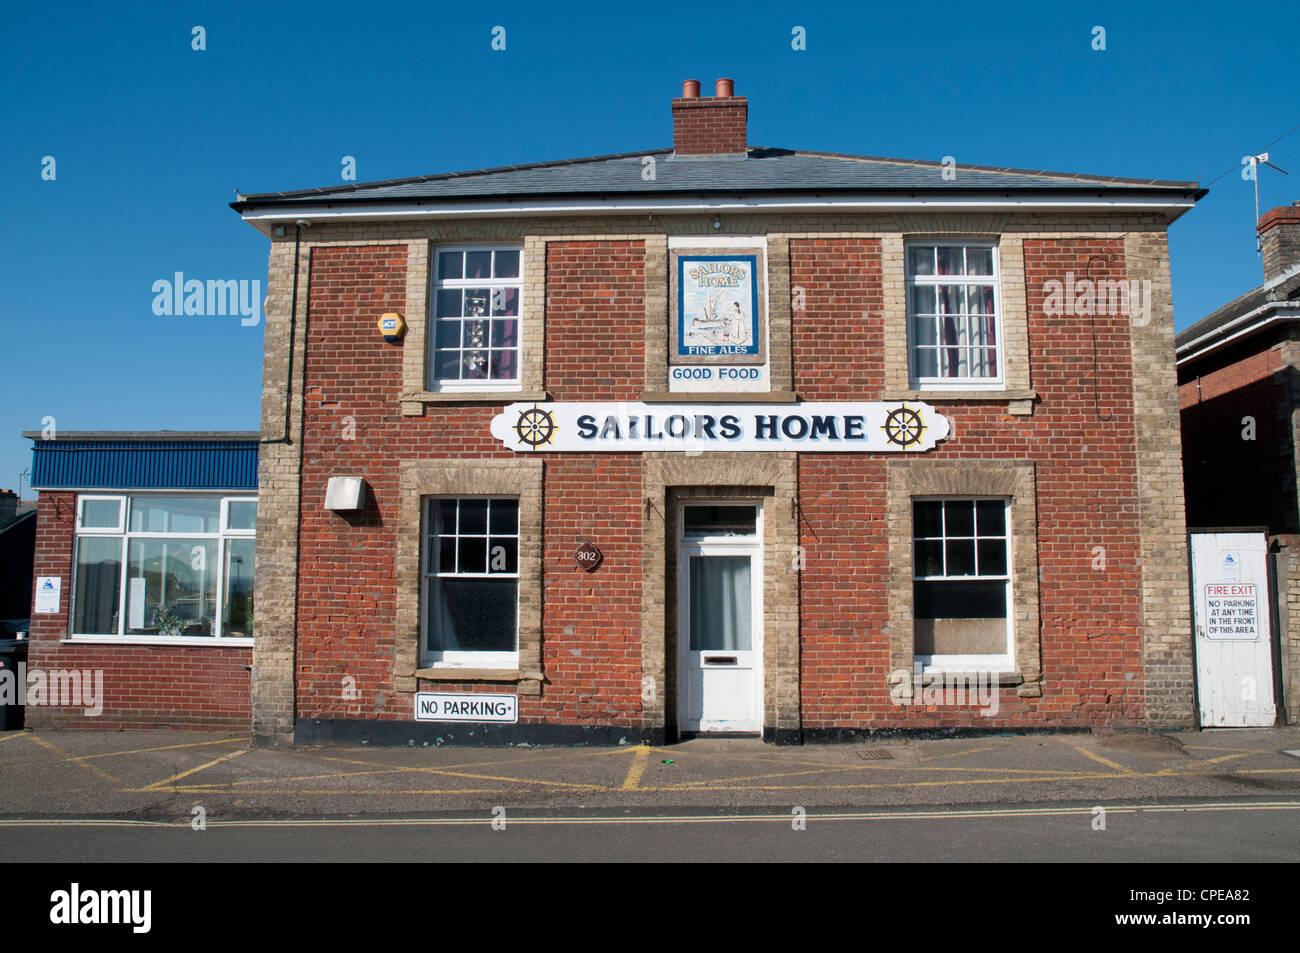 Sailors Home Pub, Kessingland, Suffolk, England - Stock Image